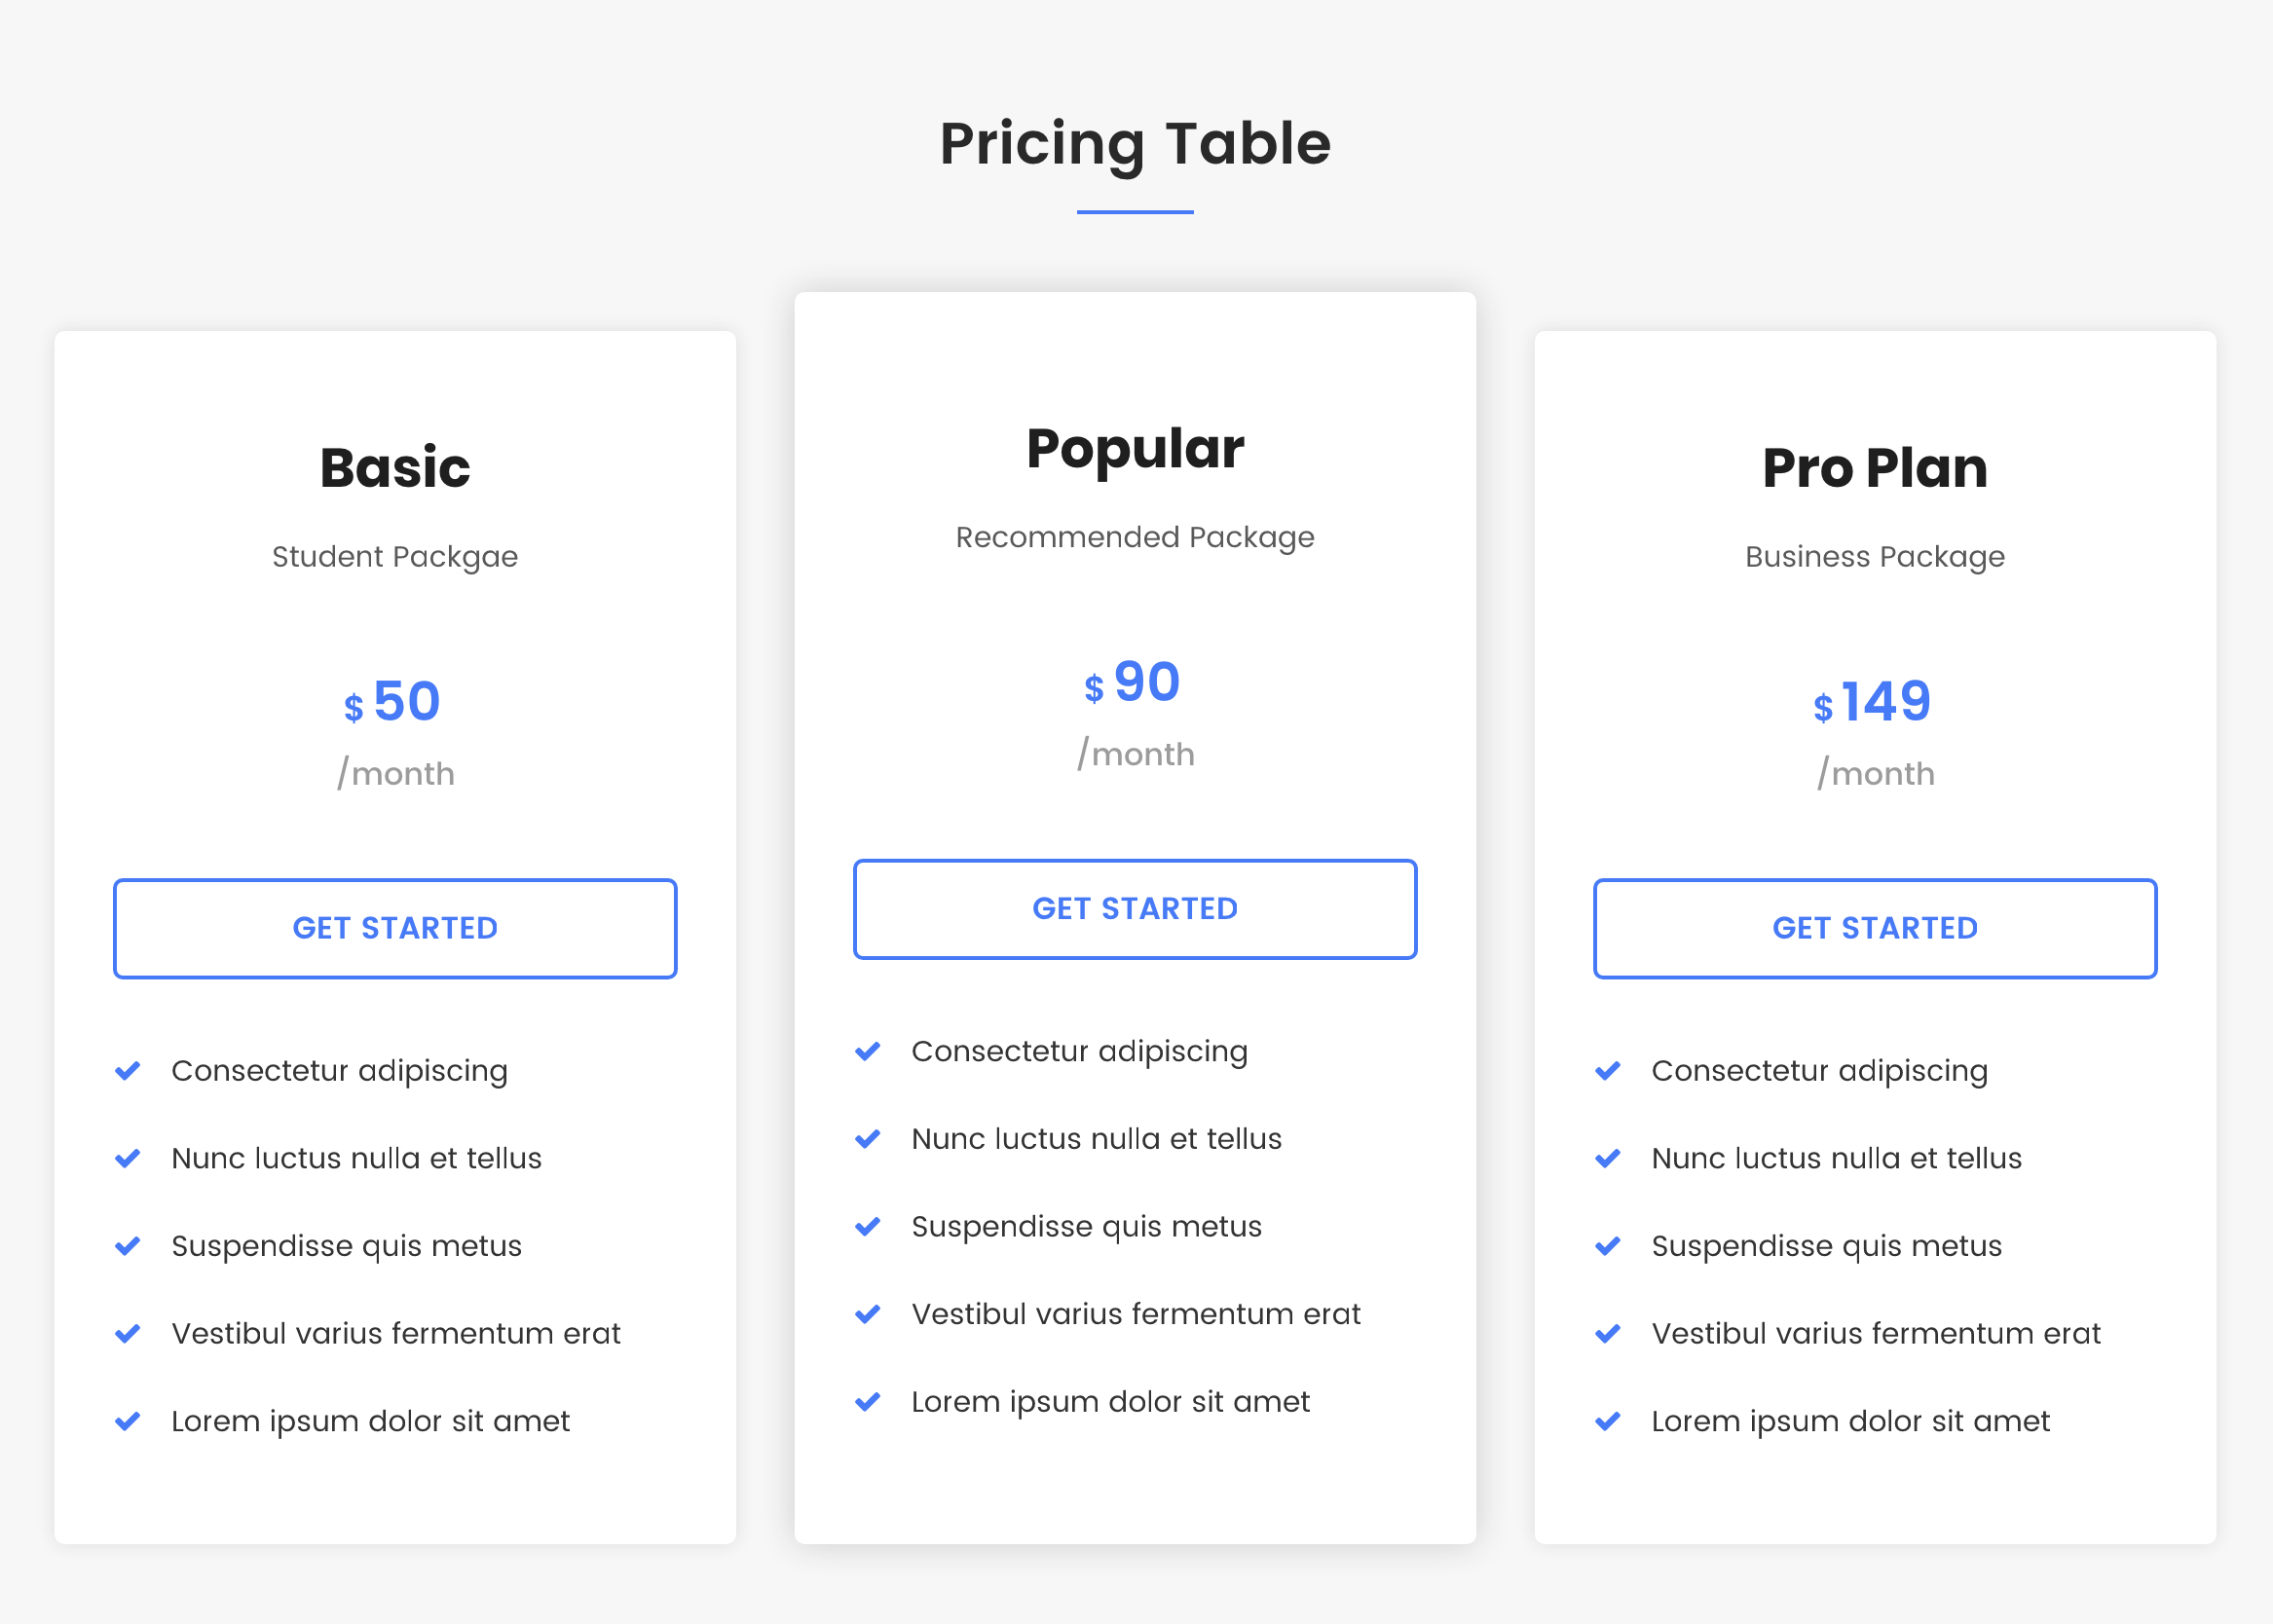 Pricing Table.